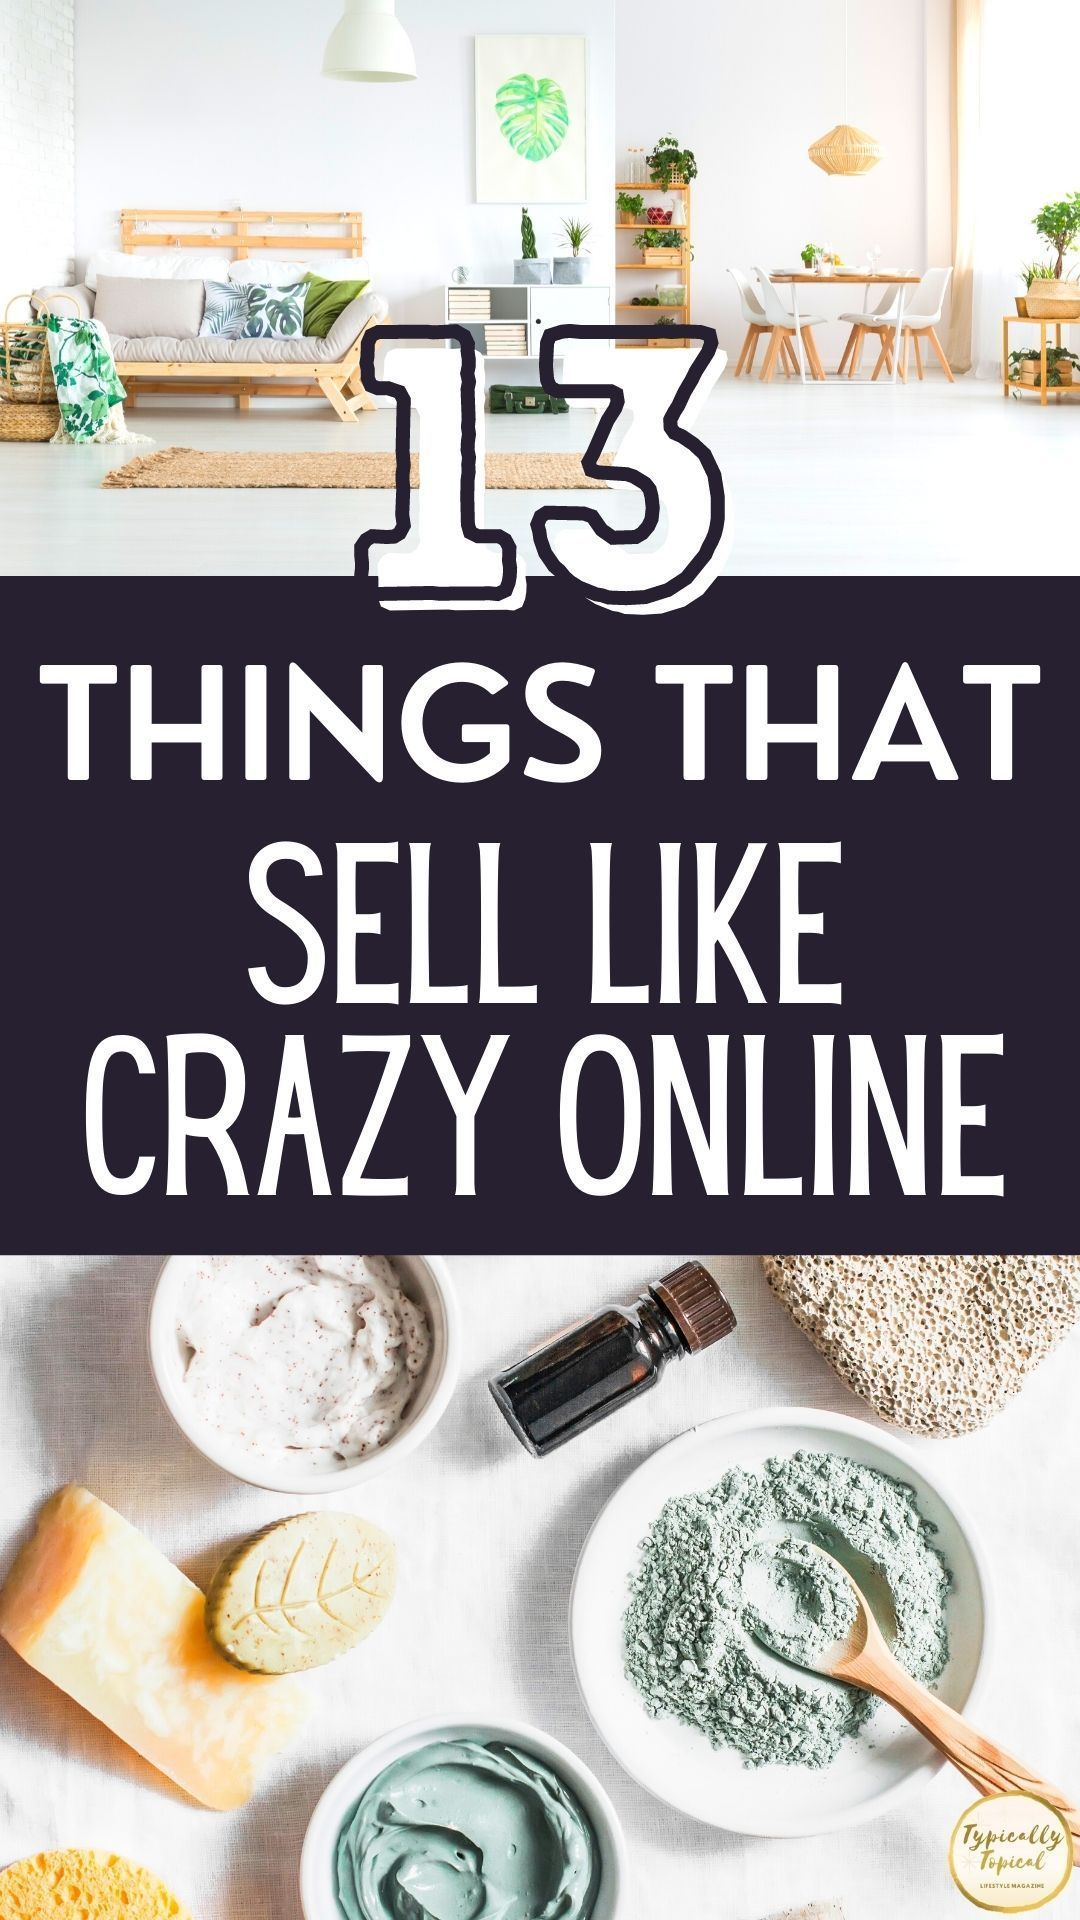 18 Easy Things To Make And Sell For Extra Money Online